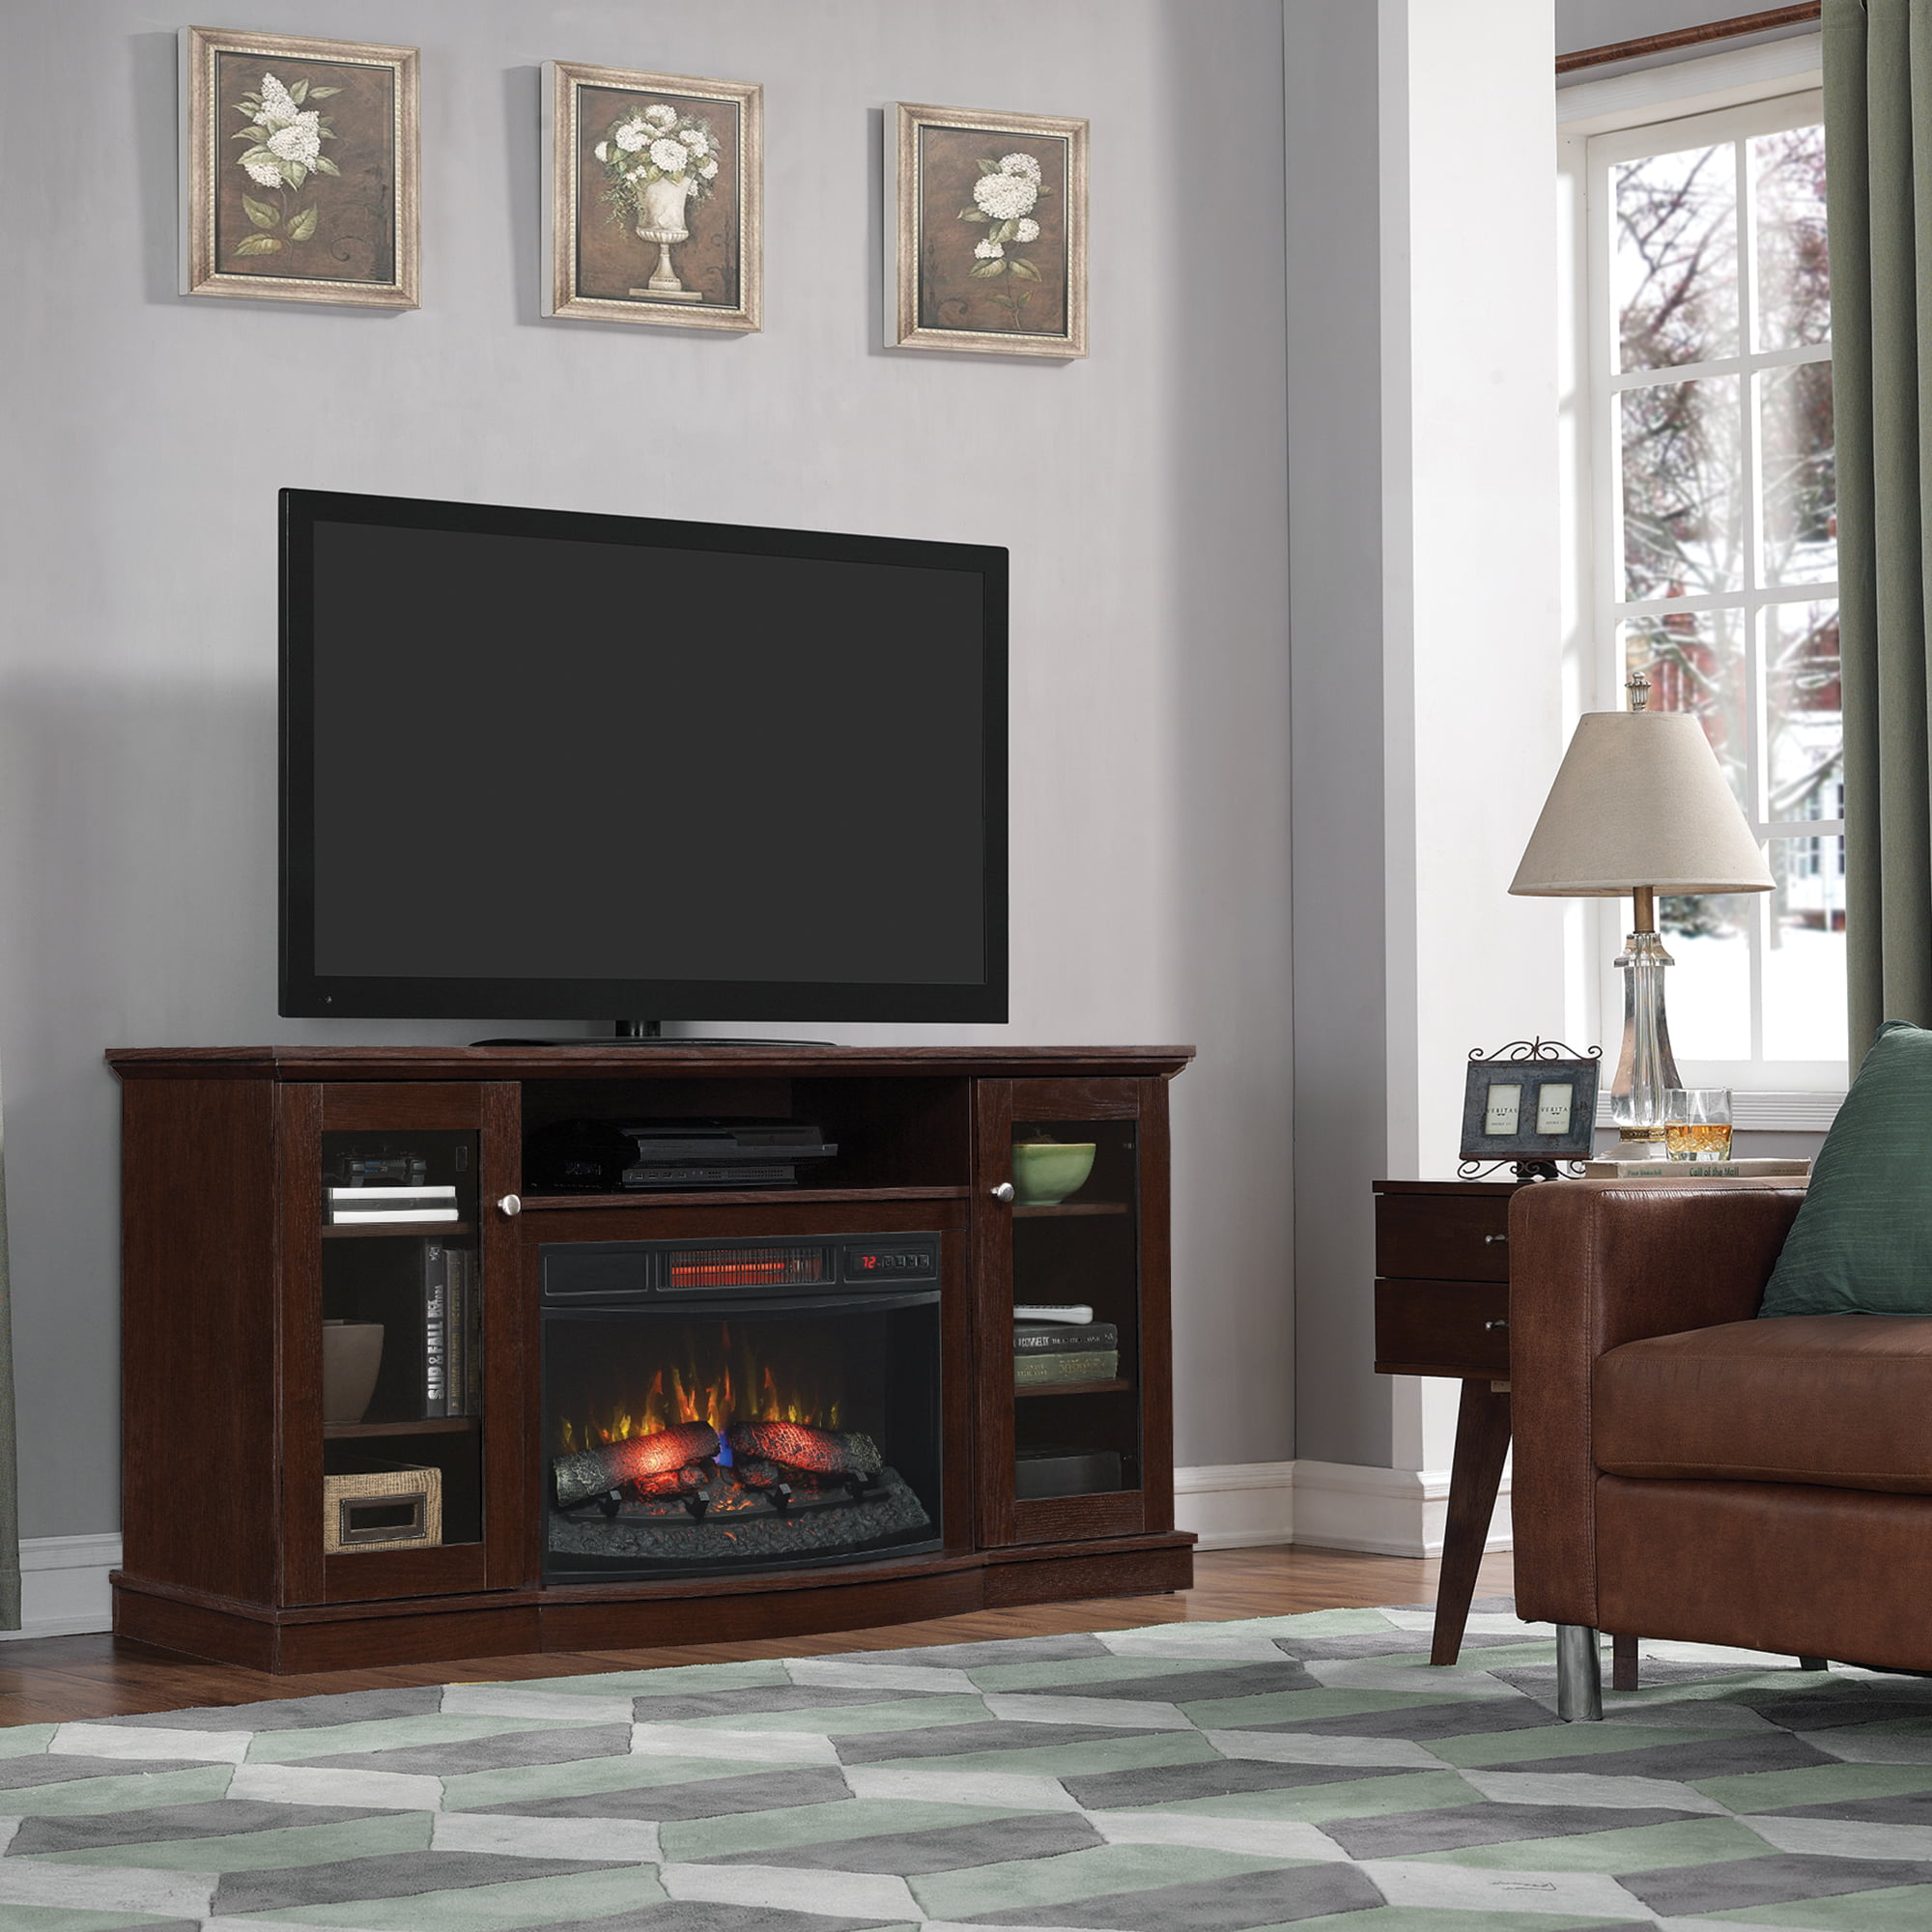 decor flame electric fireplace with 38